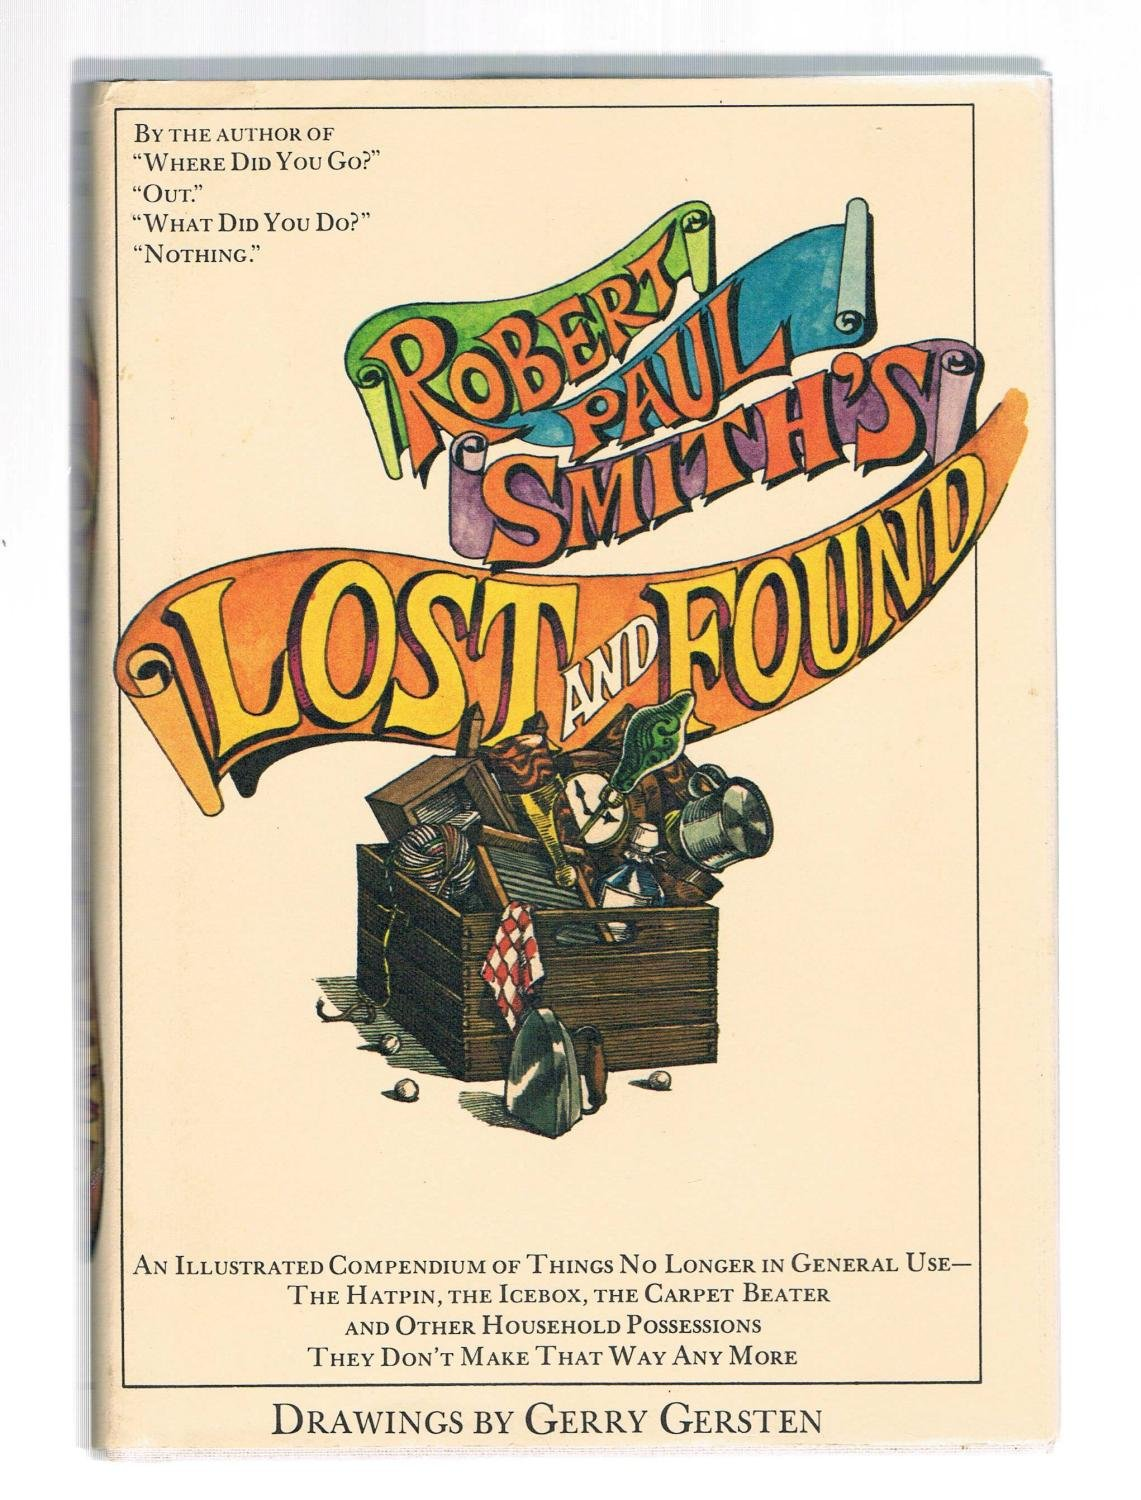 Lost & found;: An illustrated compendium of things no longer in general use: the hatpin, the icebox, the carpet beater, and oven, household possessions they don't make that way any more, Smith, Robert Paul